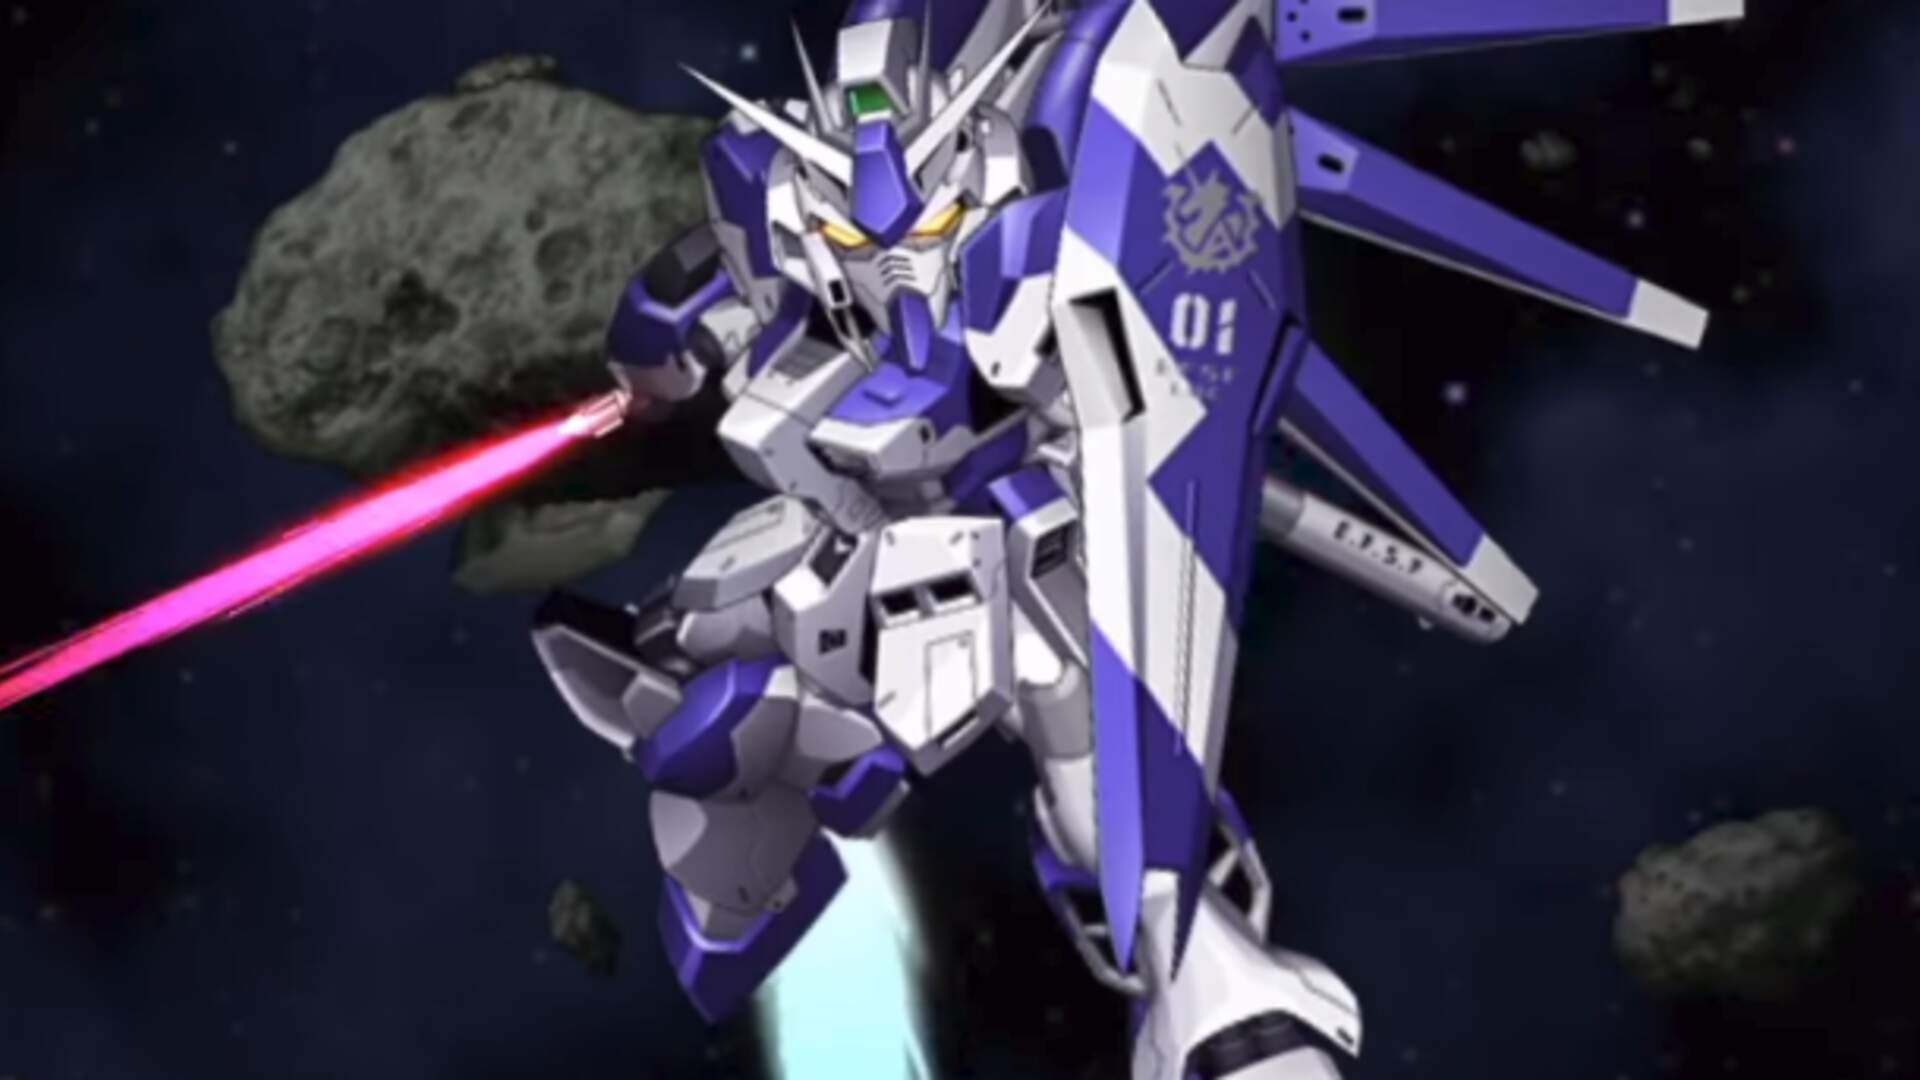 Super Robot Wars X Announced, English Subtitled Version Coming April 26